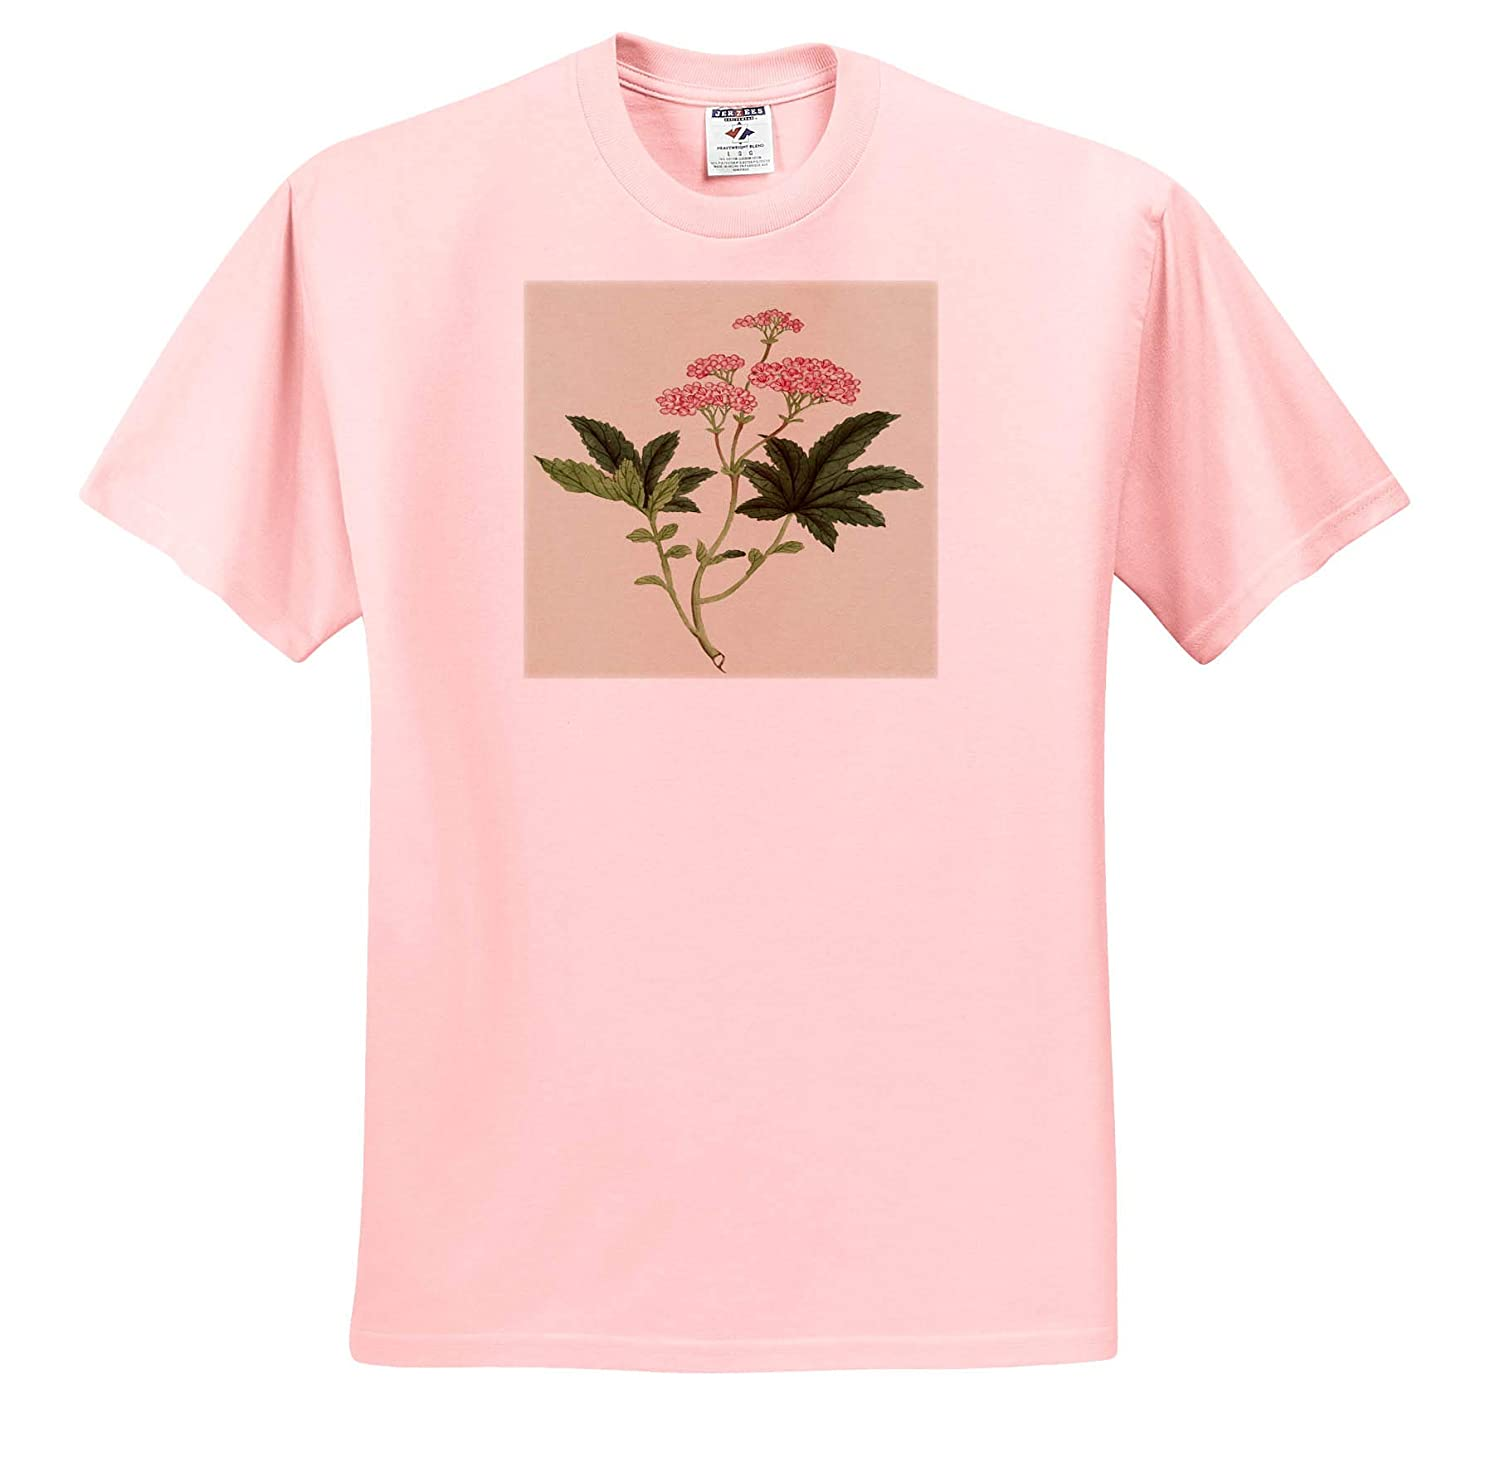 T-Shirts Vintage Style Image of Asian Pink Watercolor Flower Painting 3dRose Lens Art by Florene